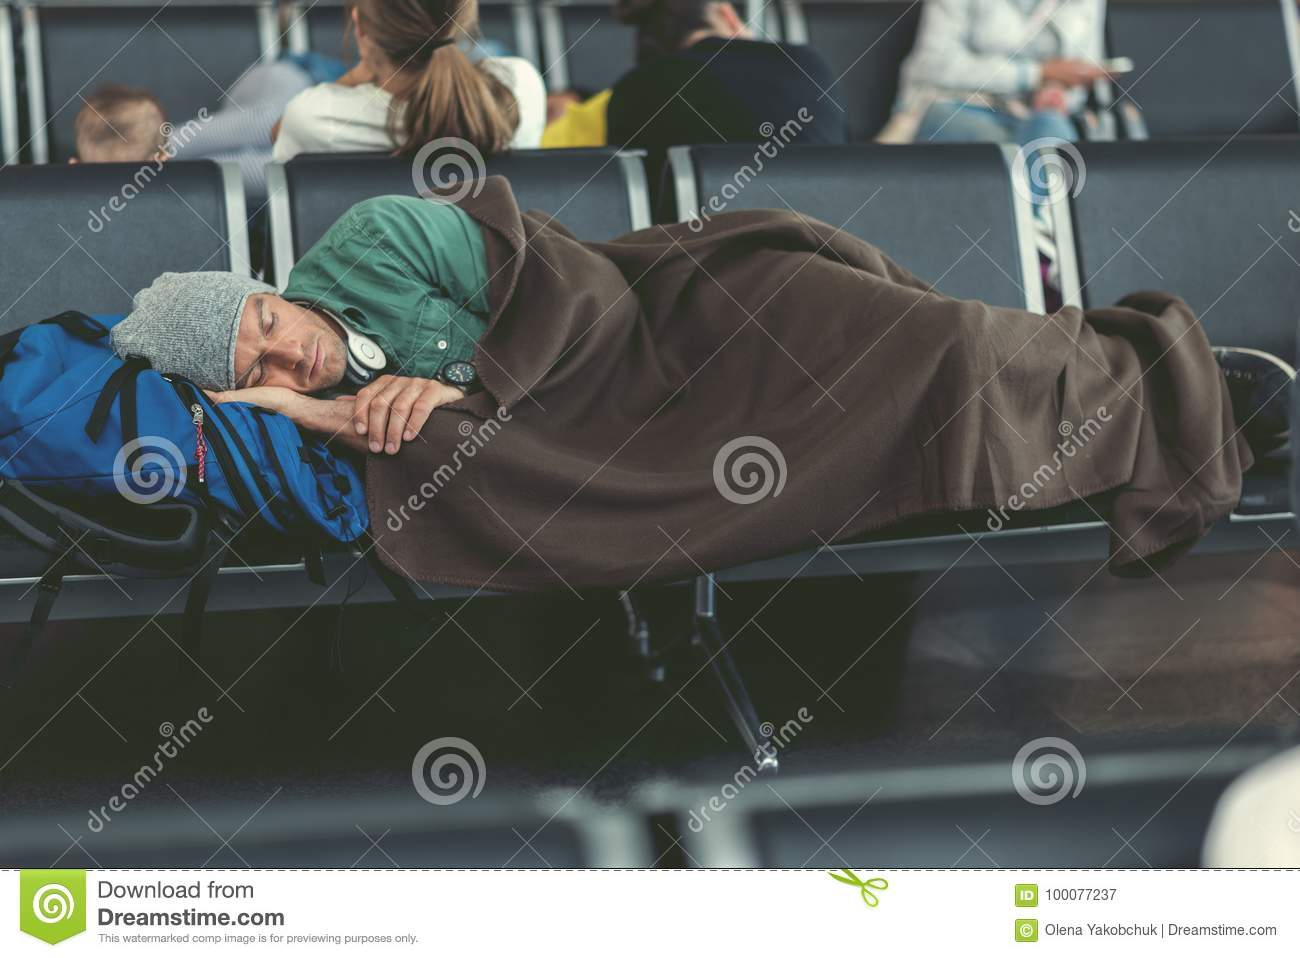 Tired guy is sleeping in airport lounge